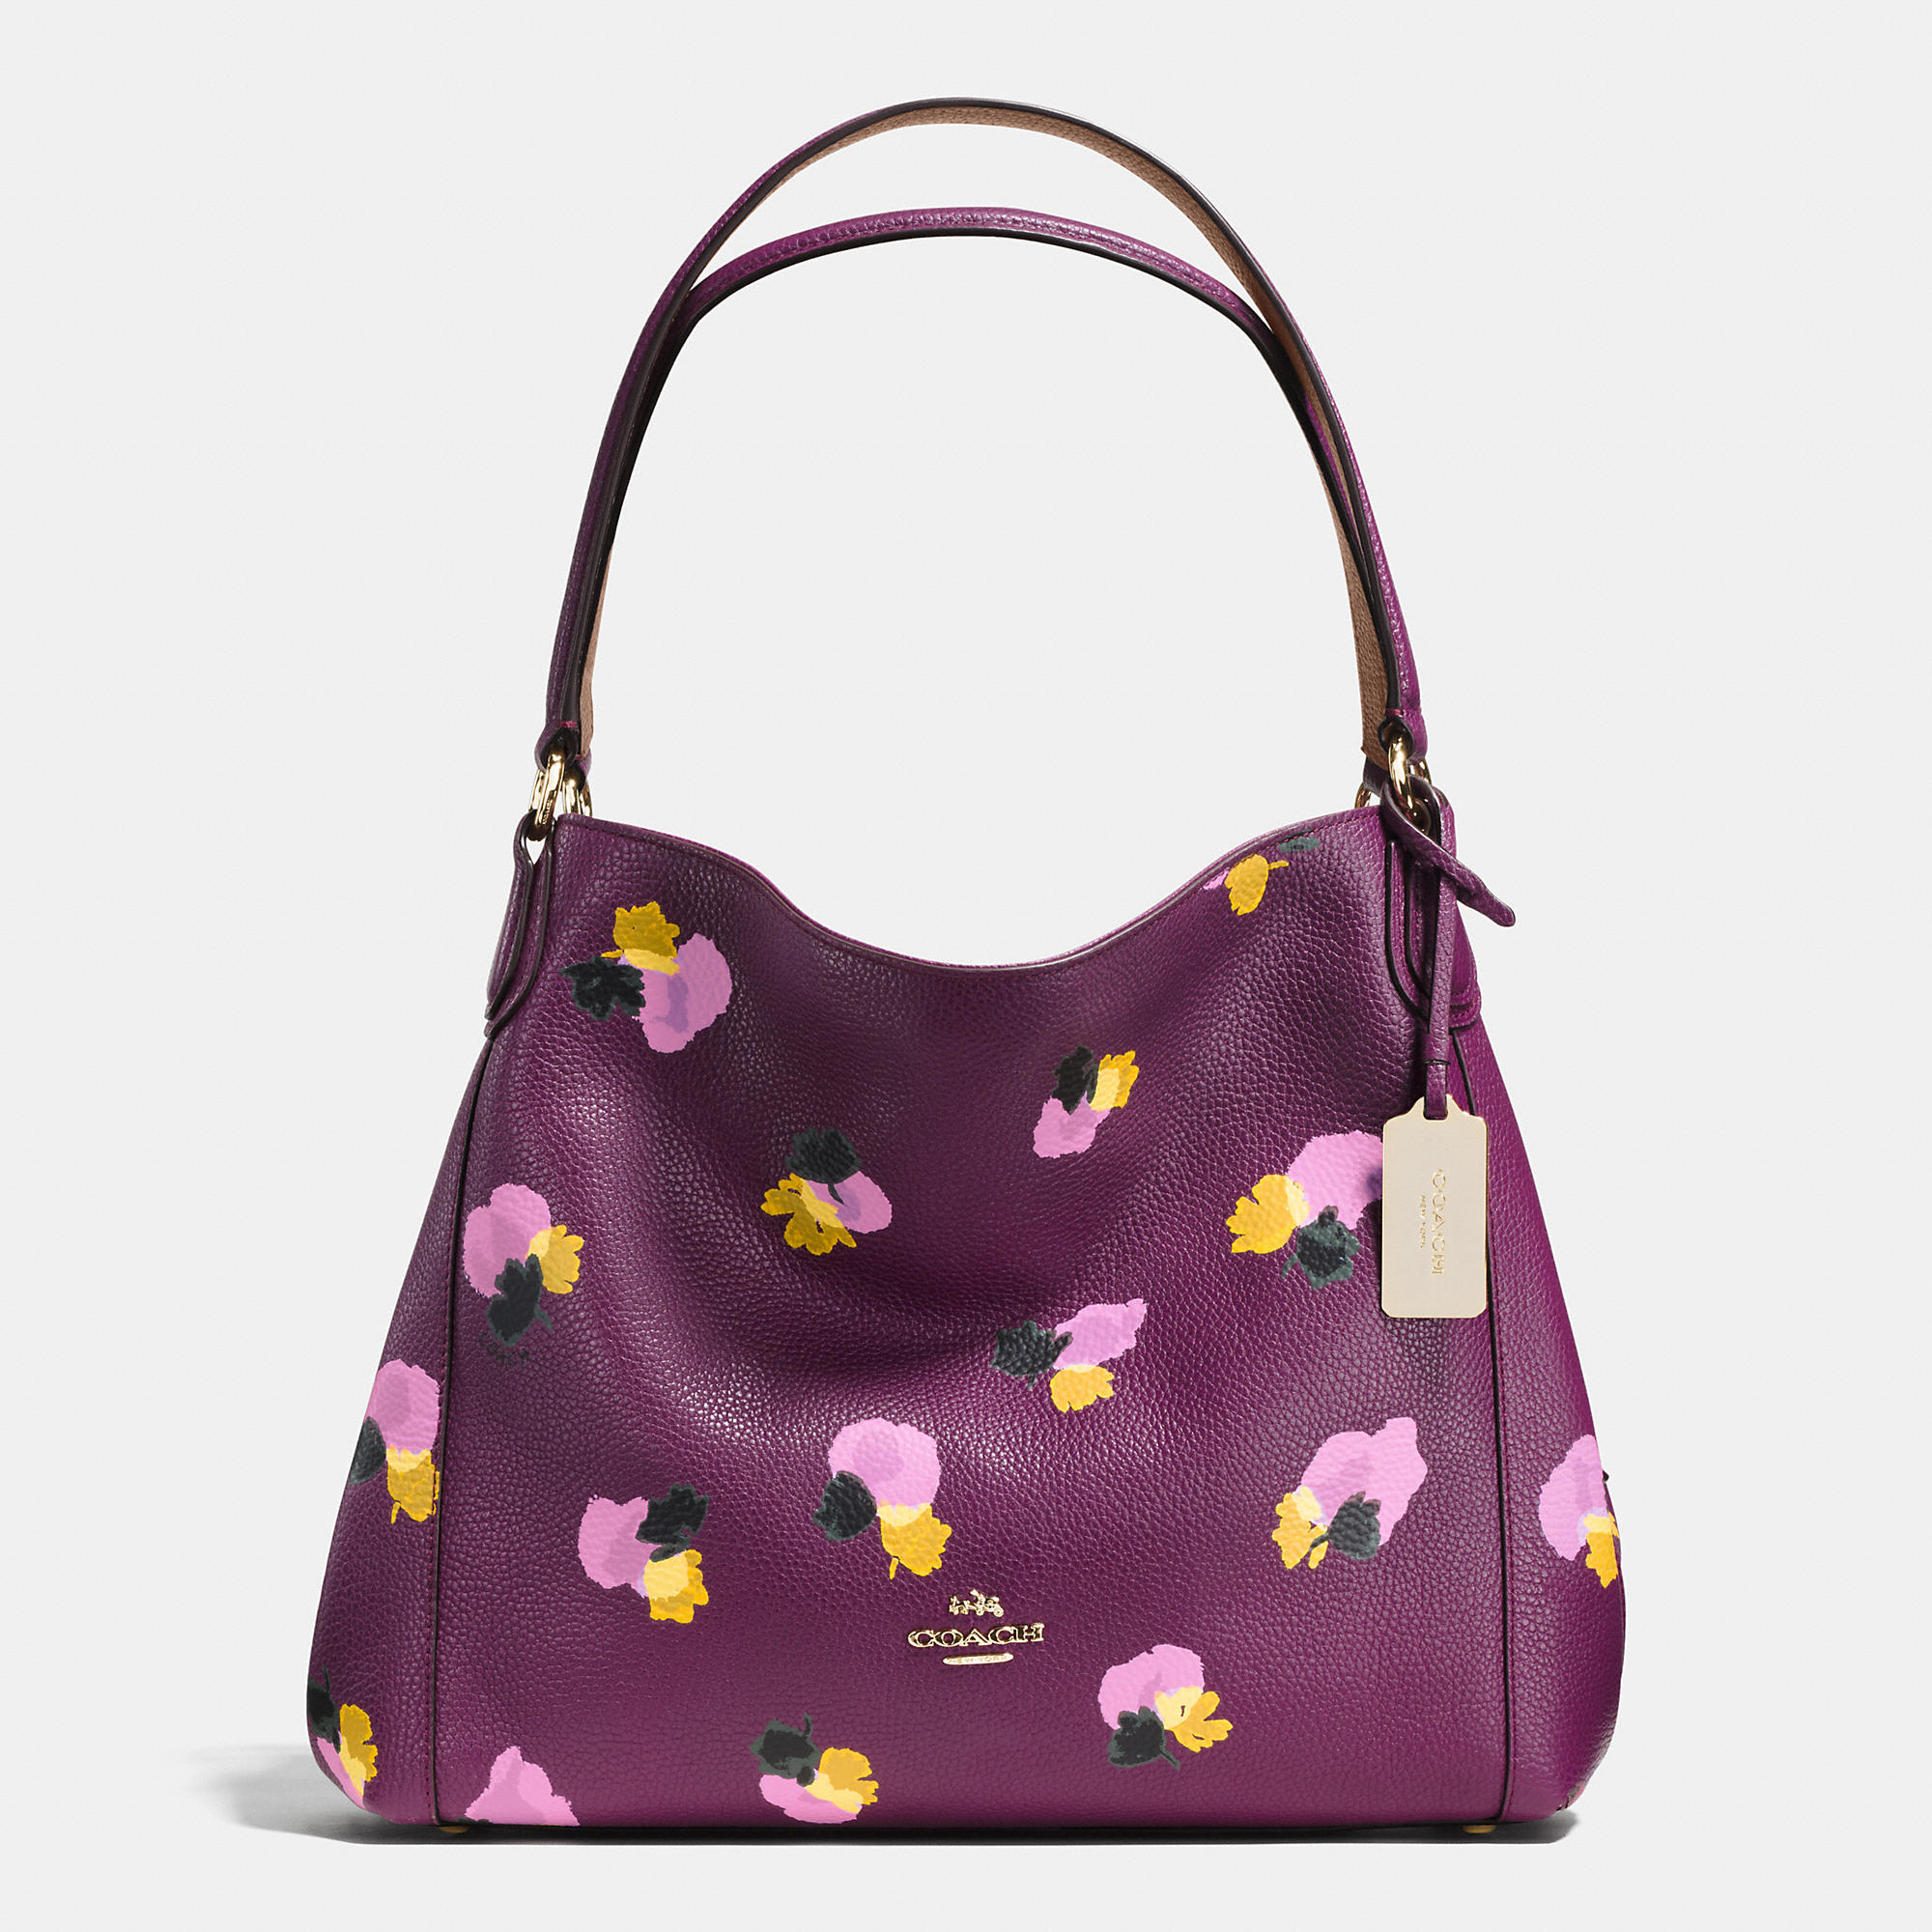 86b6c1a10588 Lyst - COACH Edie Shoulder Bag 31 In Floral Print Leather in Purple